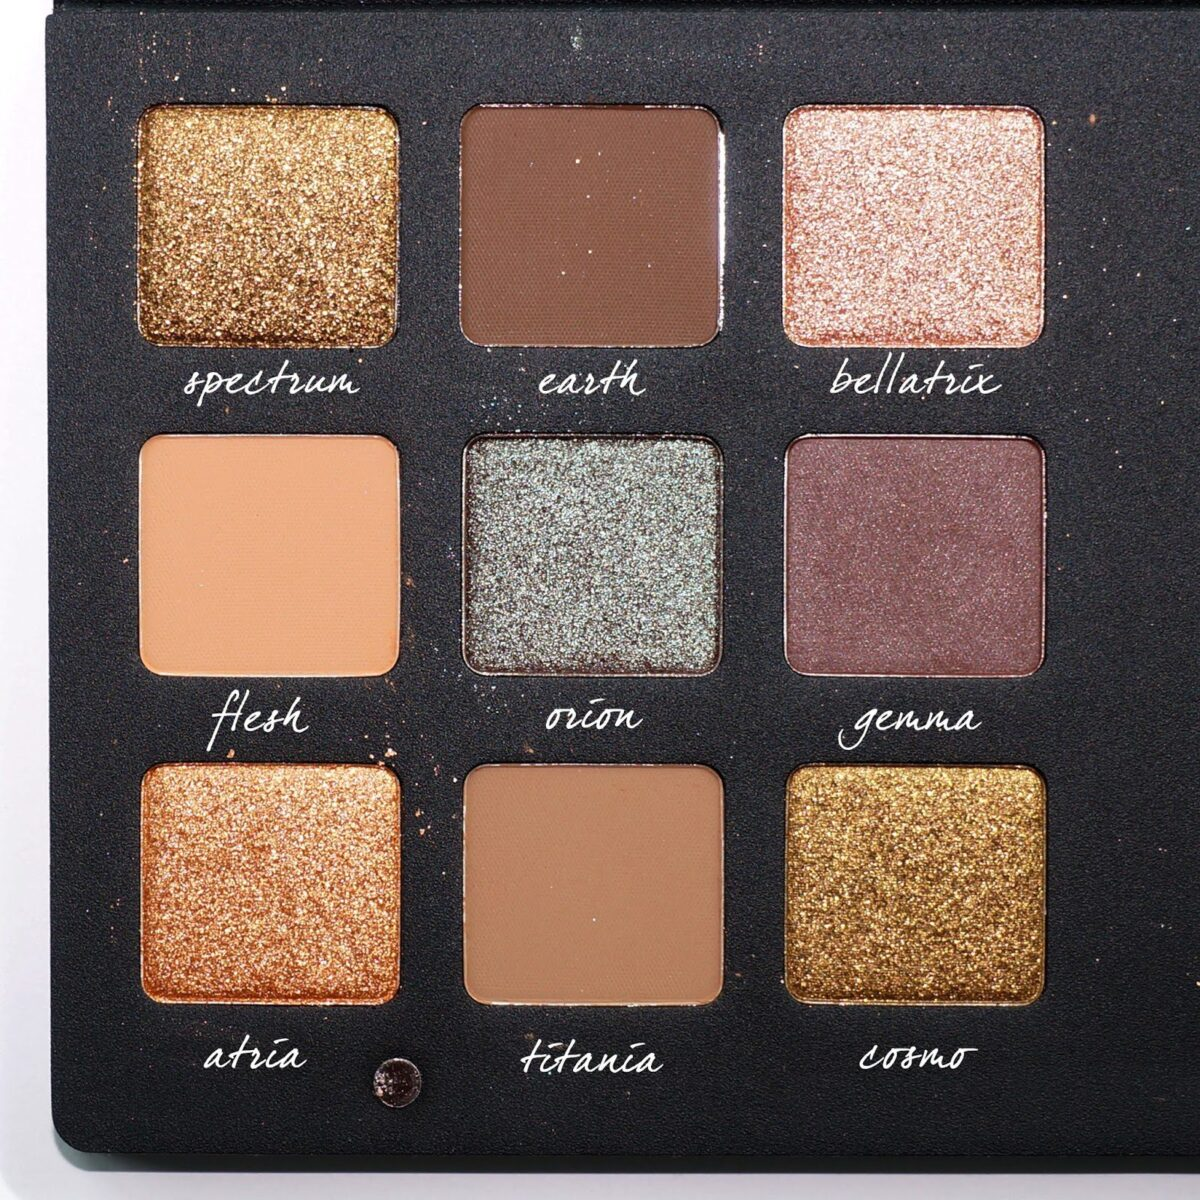 natasha-denona-star-palette-left-side